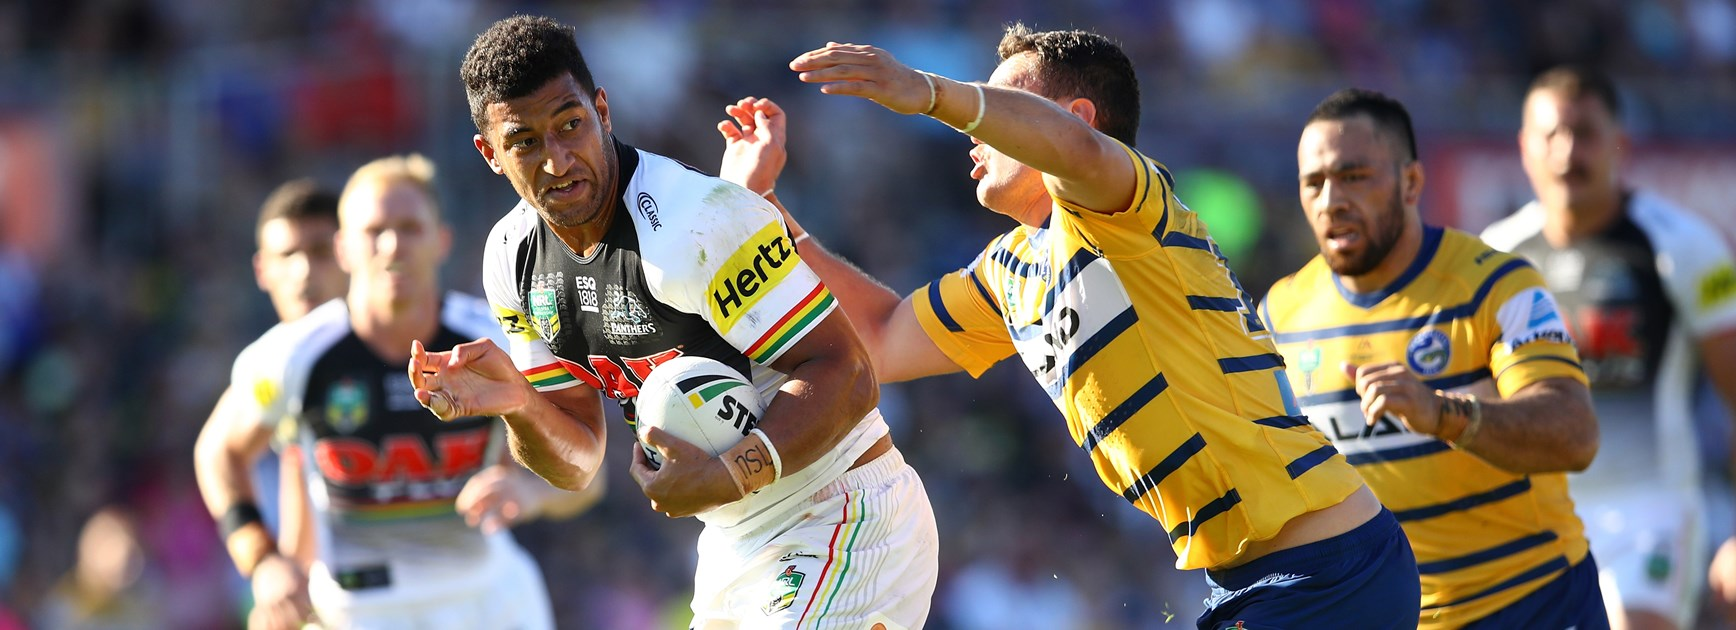 Kikau credits World Cup for 'game changing' performance